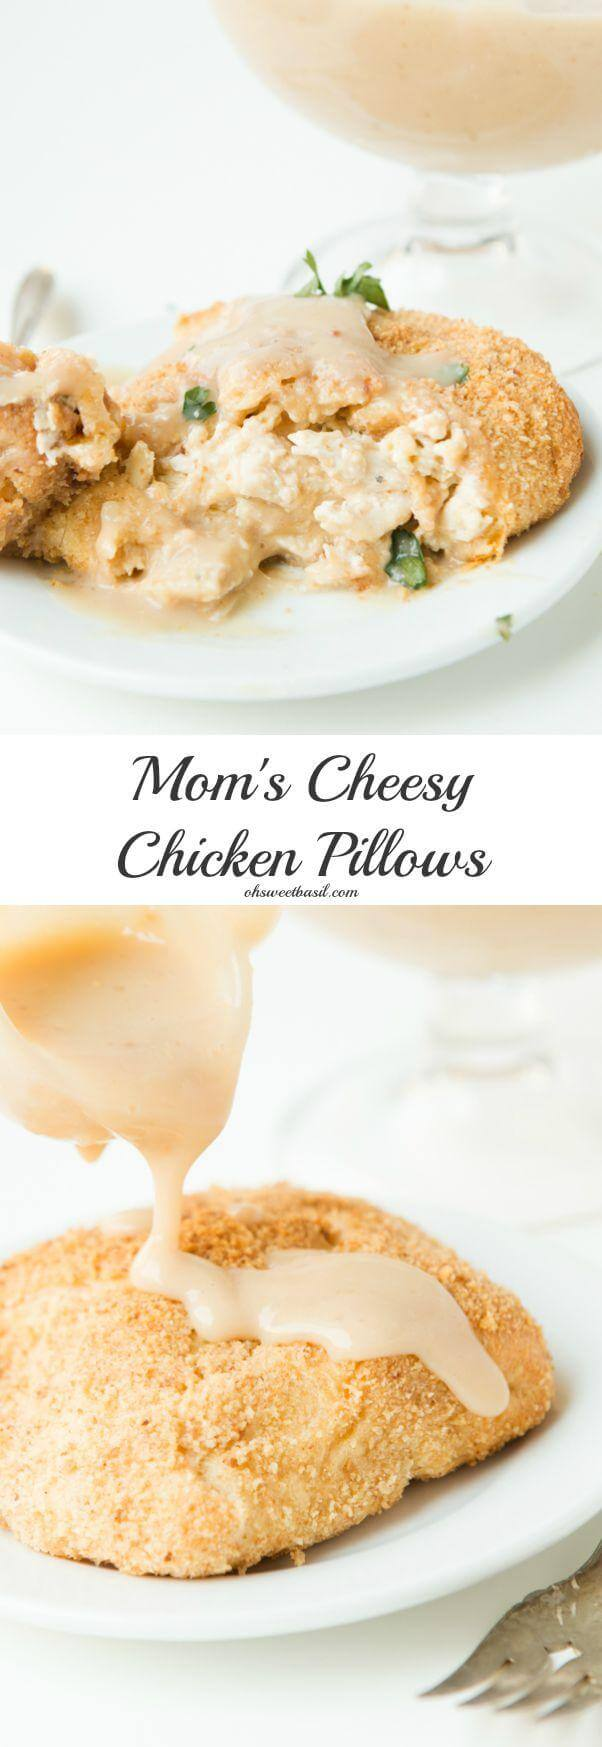 Mom's killer cheesy chicken pillows that the kids can't resist ohsweetbasil.com